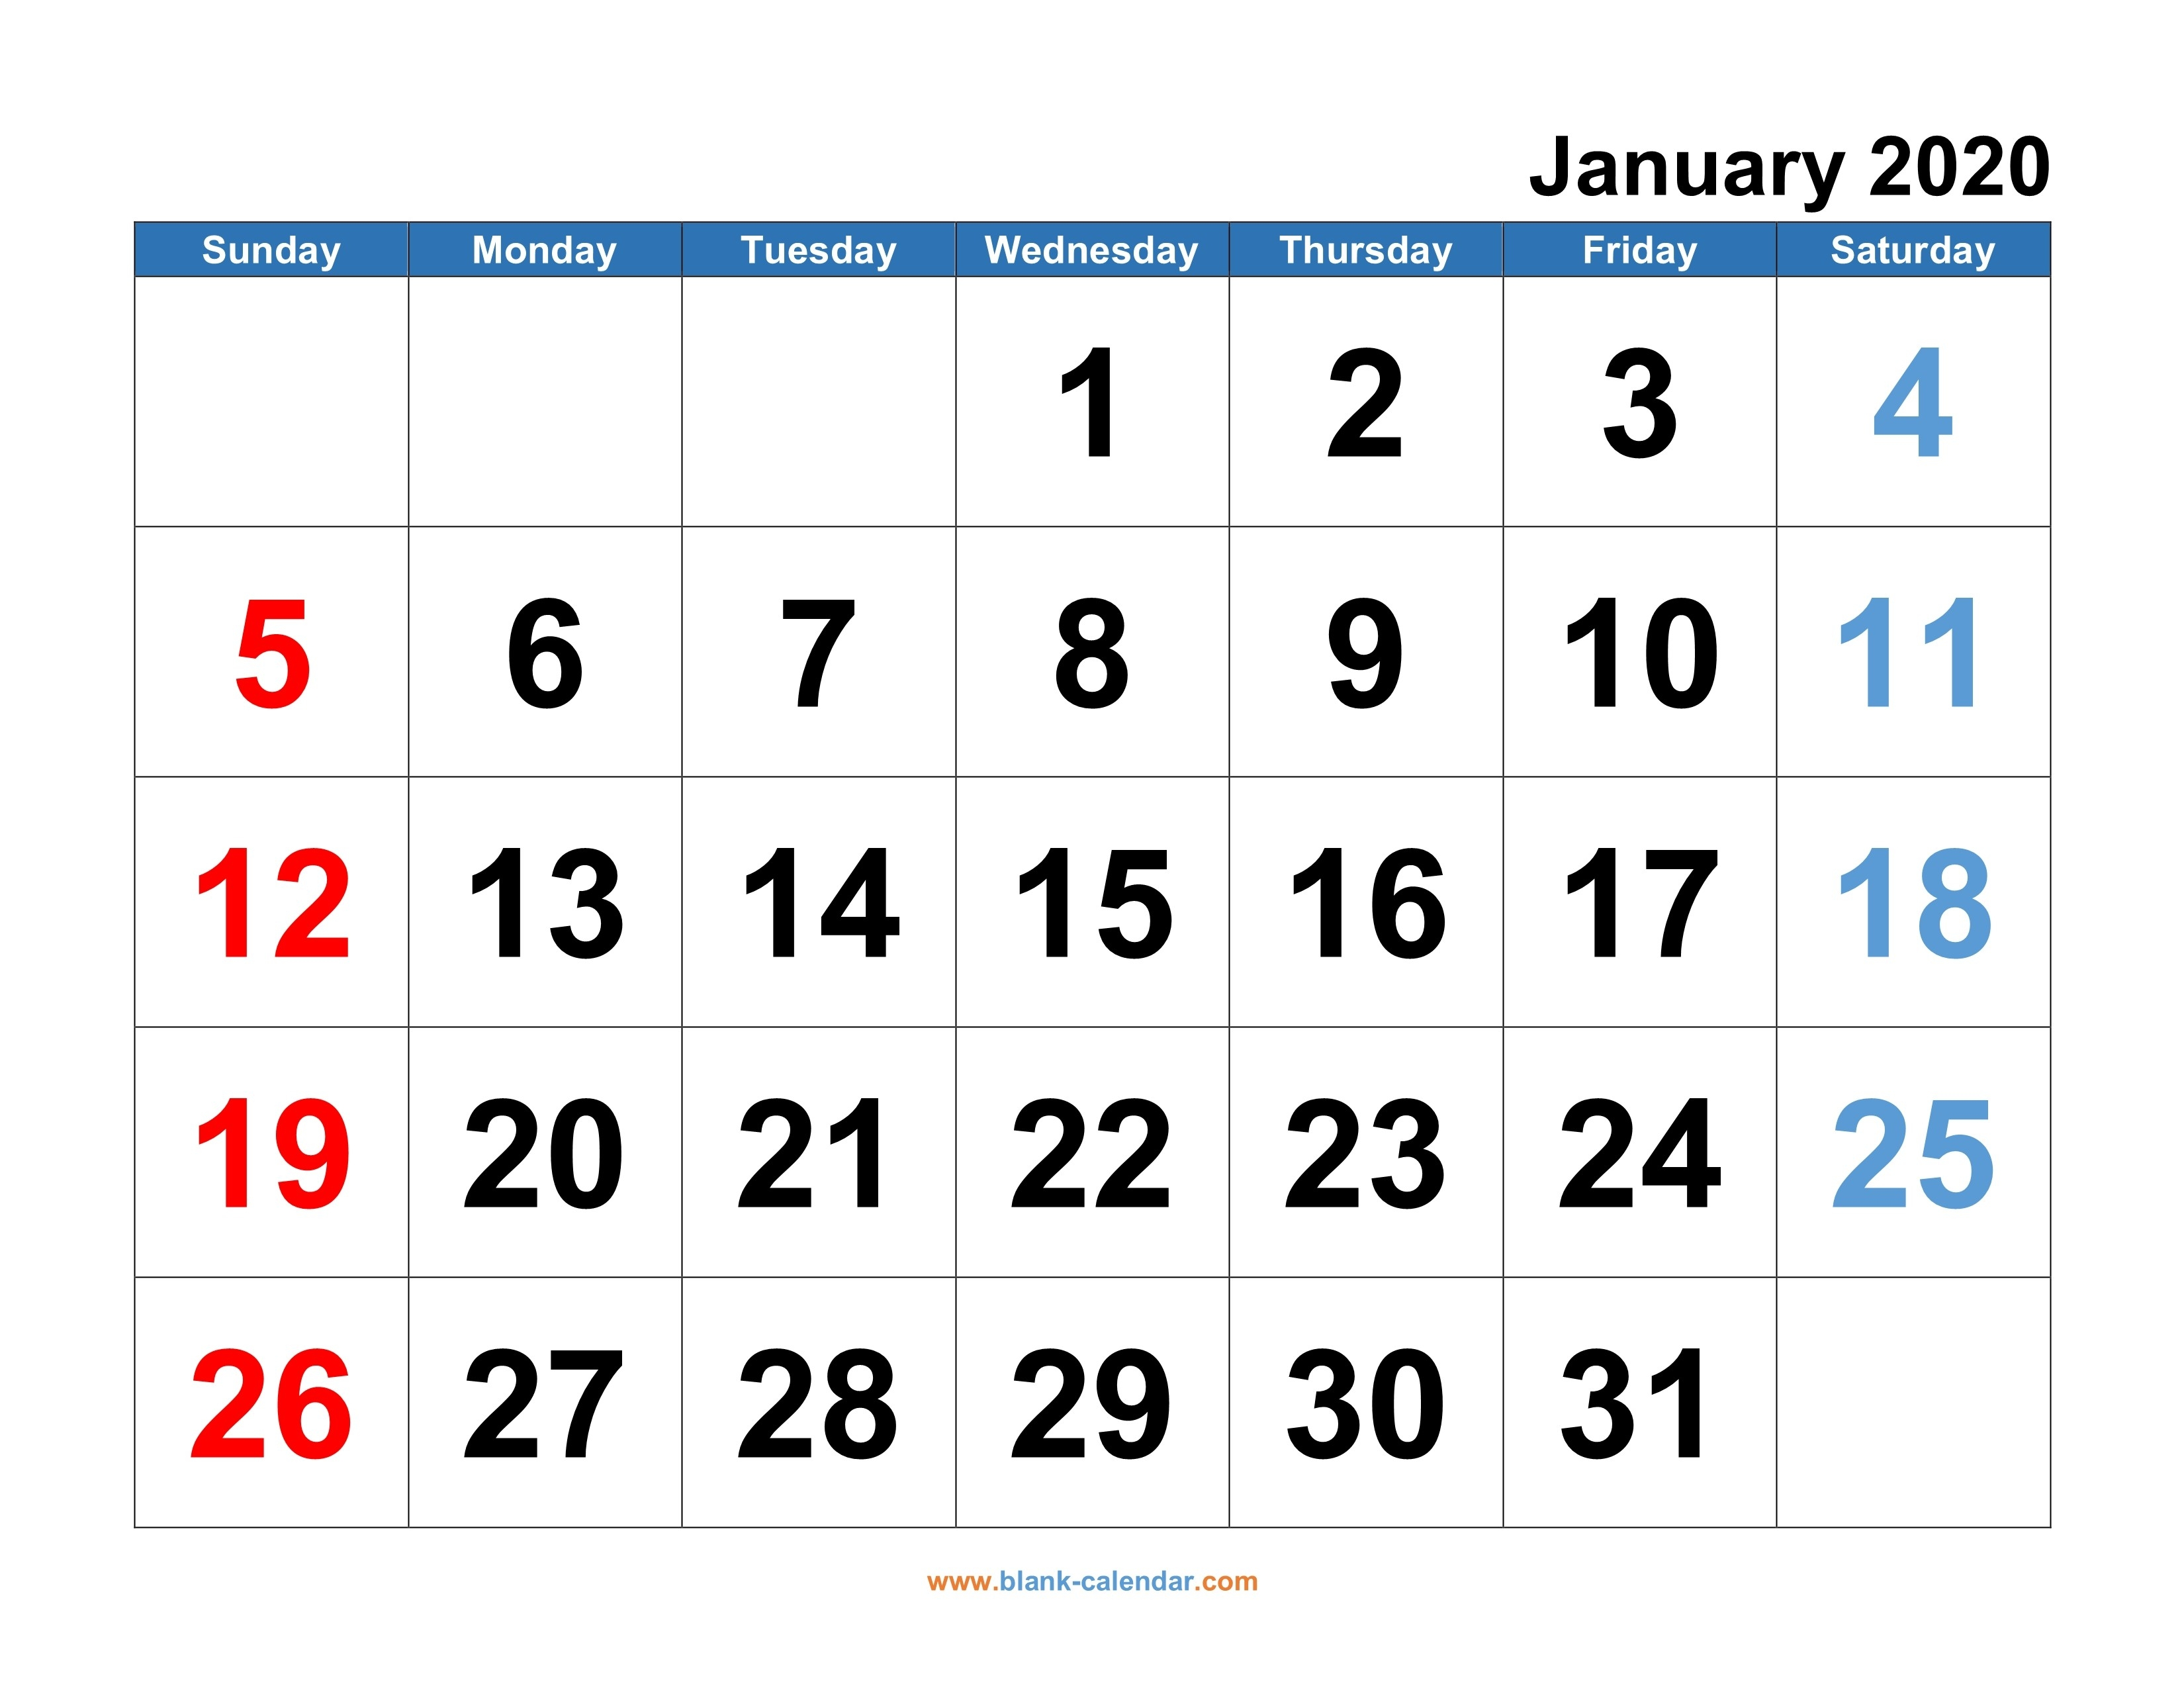 Monthly Calendar 2020 | Free Download, Editable And Printable-Calendar Templates 3 Months Per Page 2020